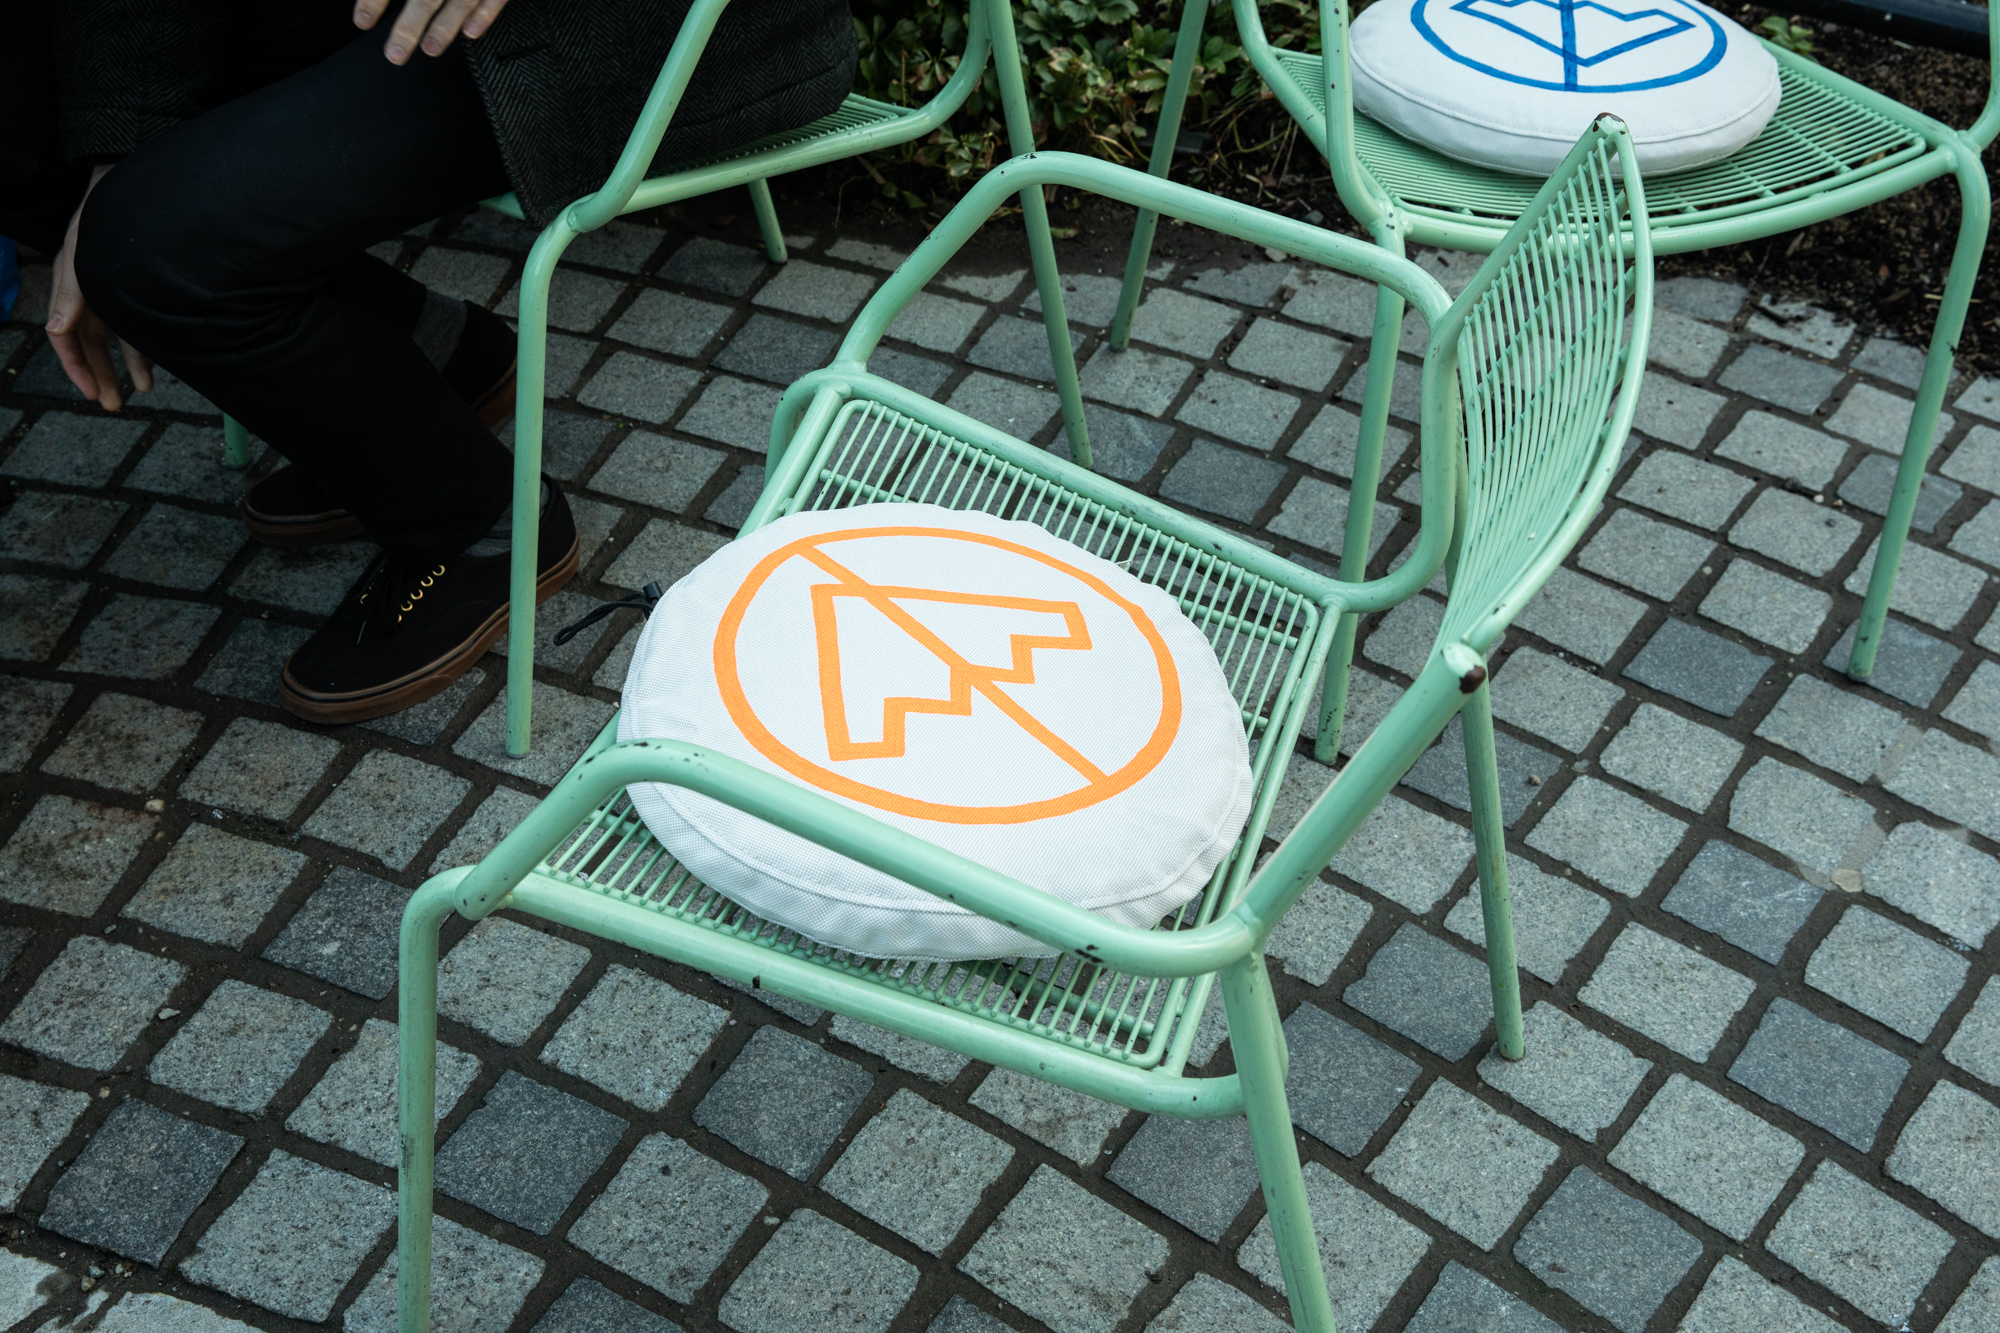 A green, metal chair with a round cushion painted with an orange crossed-out-stairs symbol.